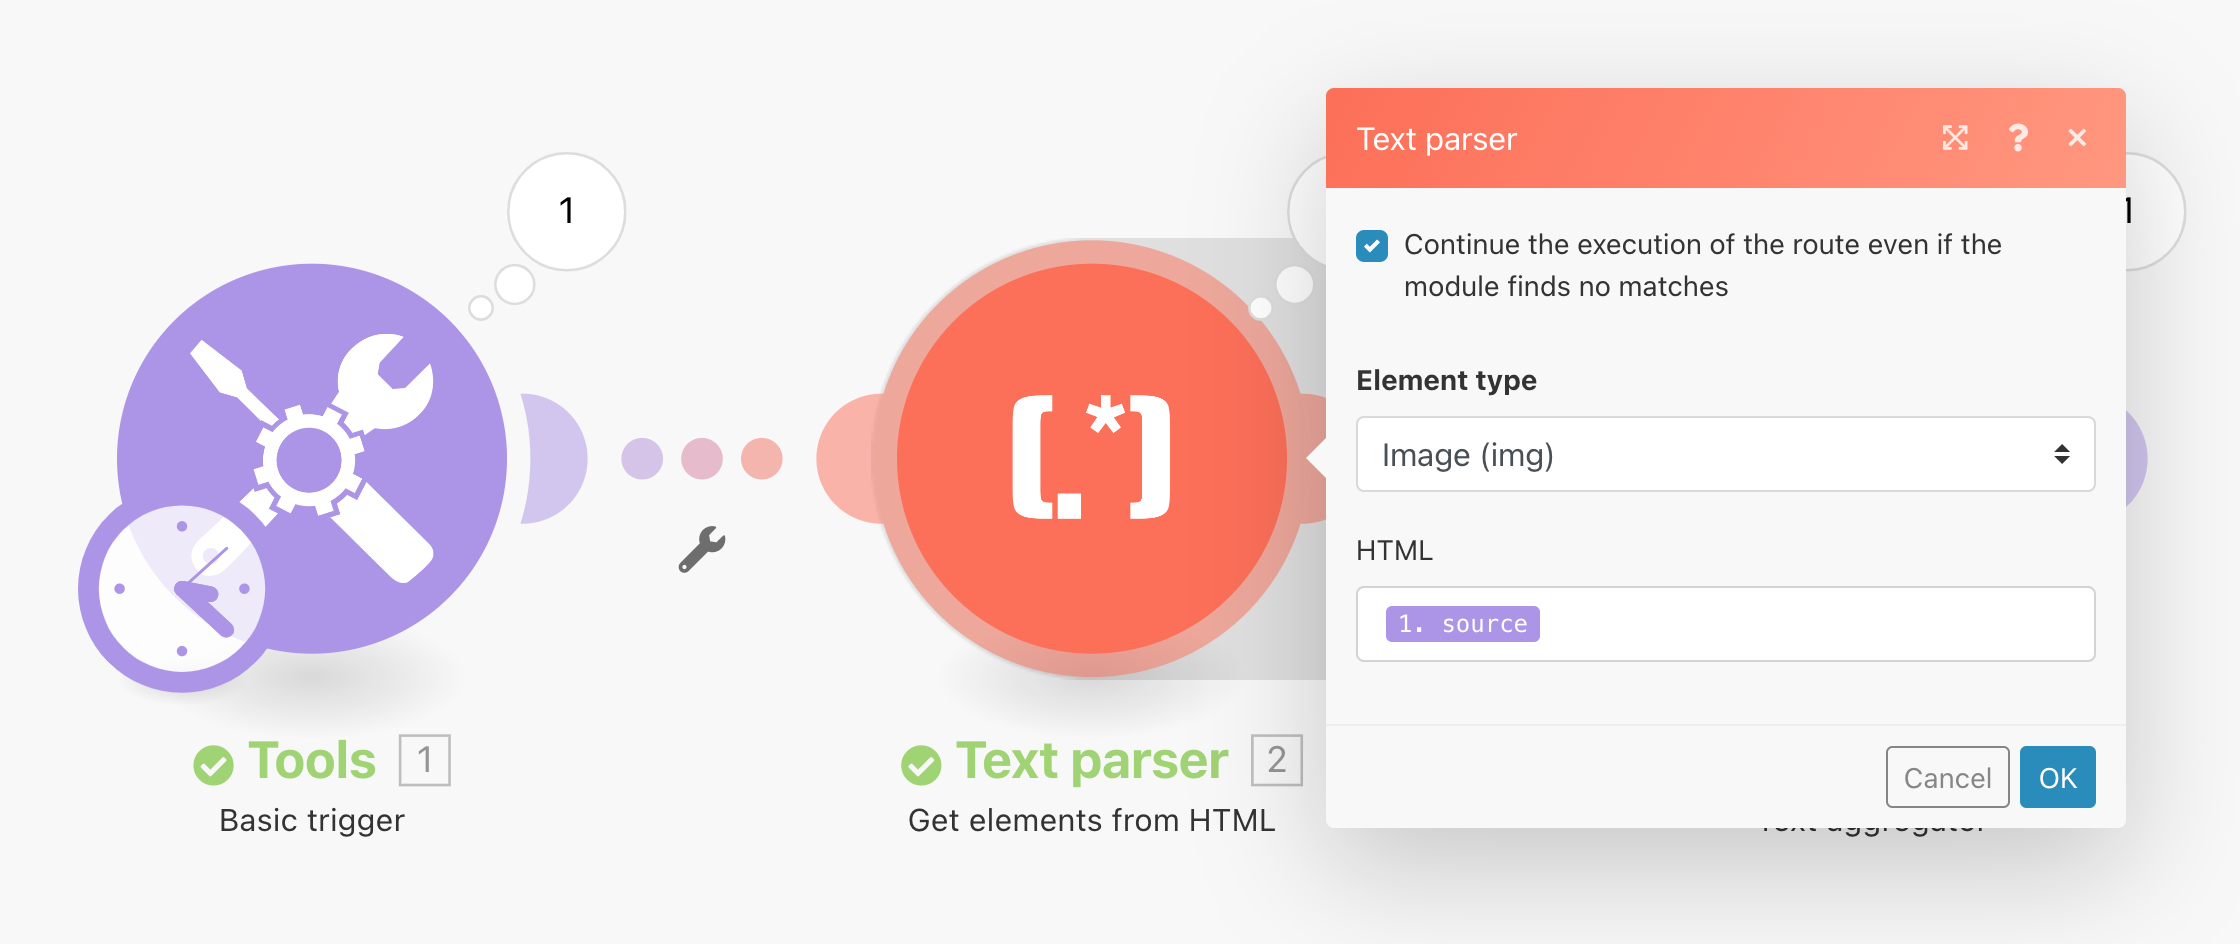 Text parser for image tags